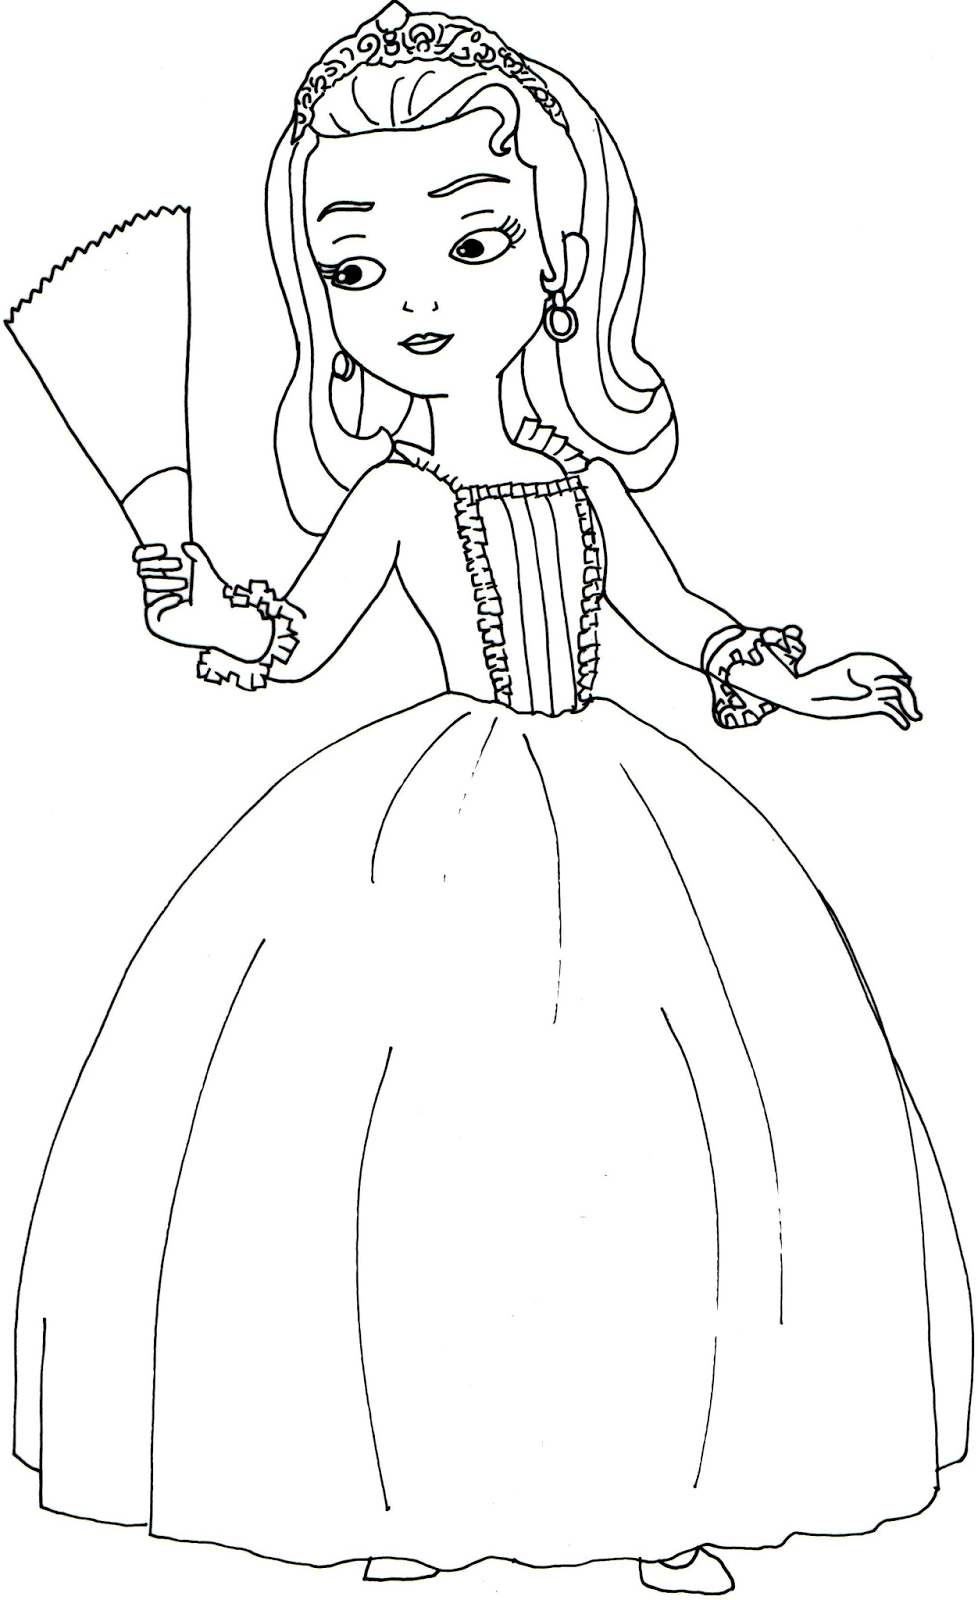 sofia coloring pages | Princess Sofia the First Coloring Pages ...